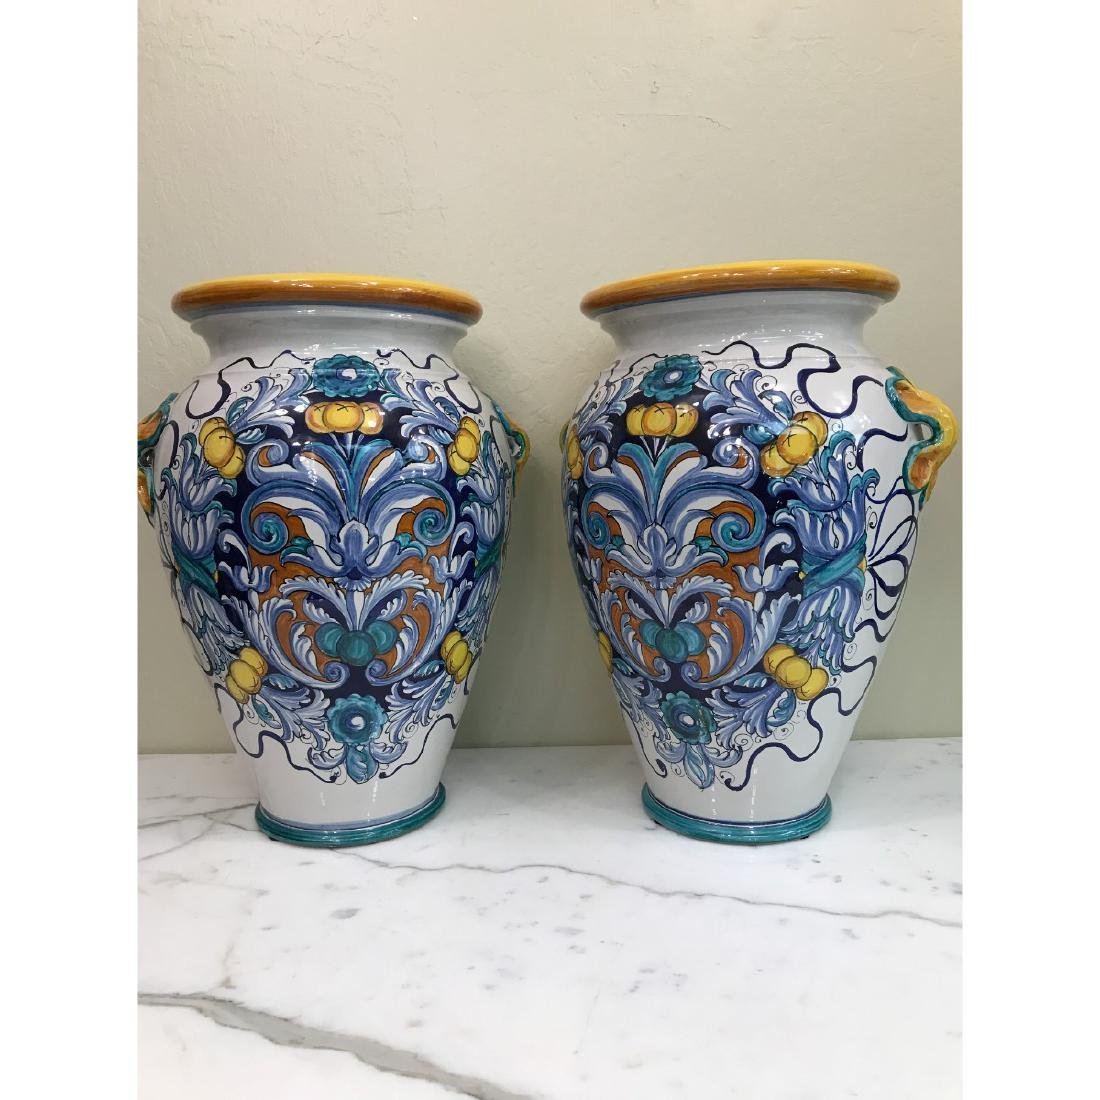 Pair of Magnificnet Hand-Painted Vases